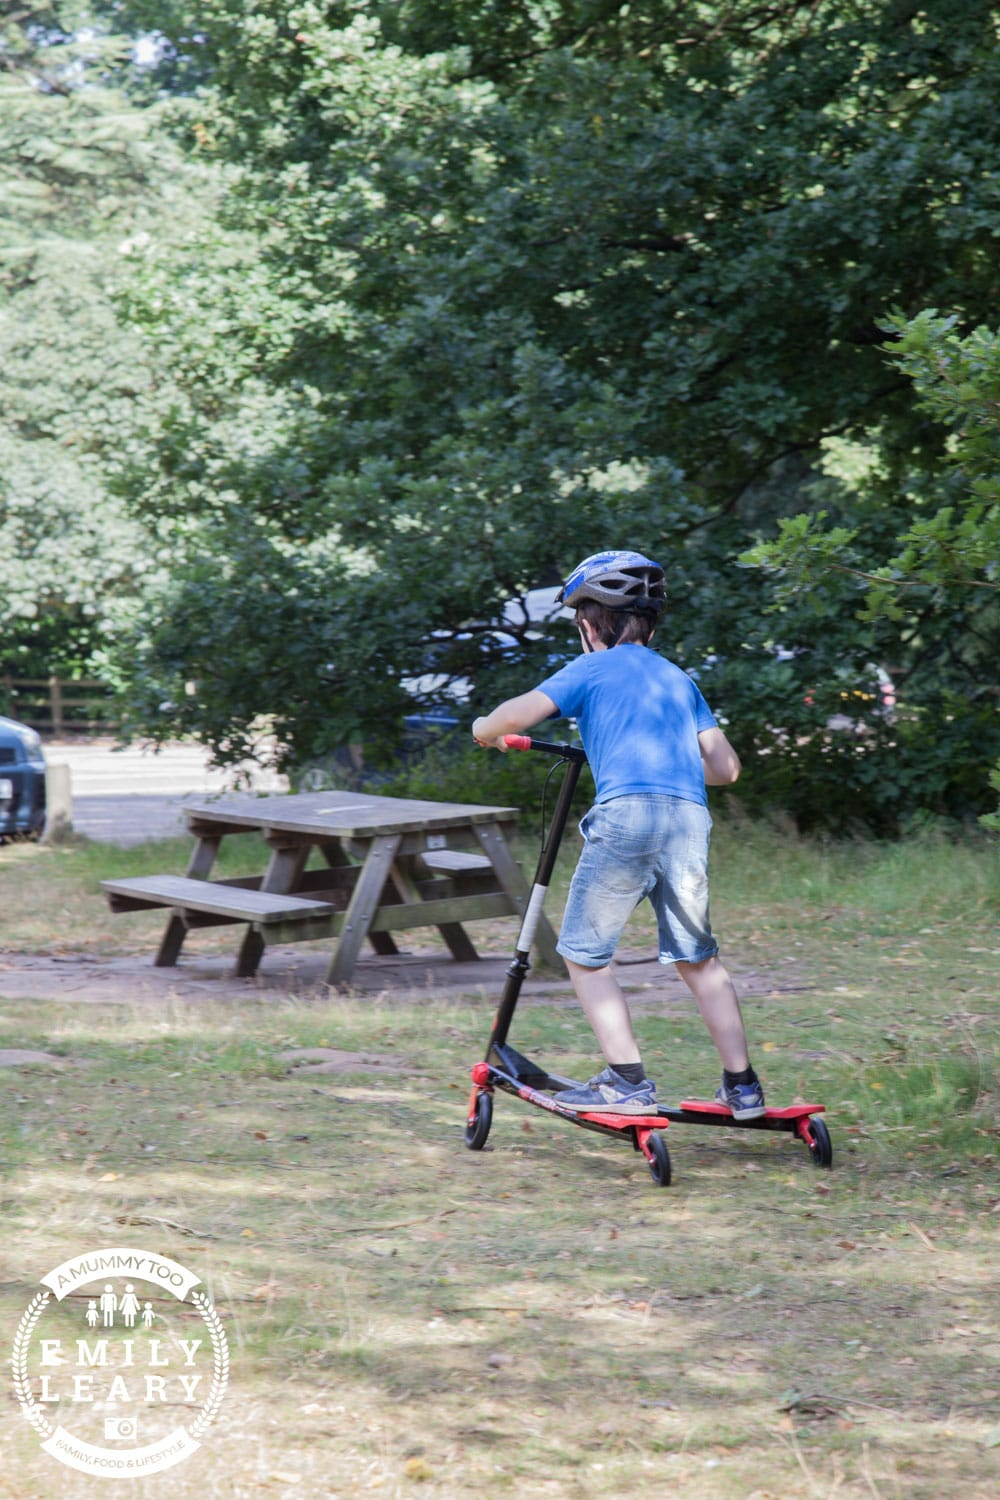 JD on scooter at Clumber Park